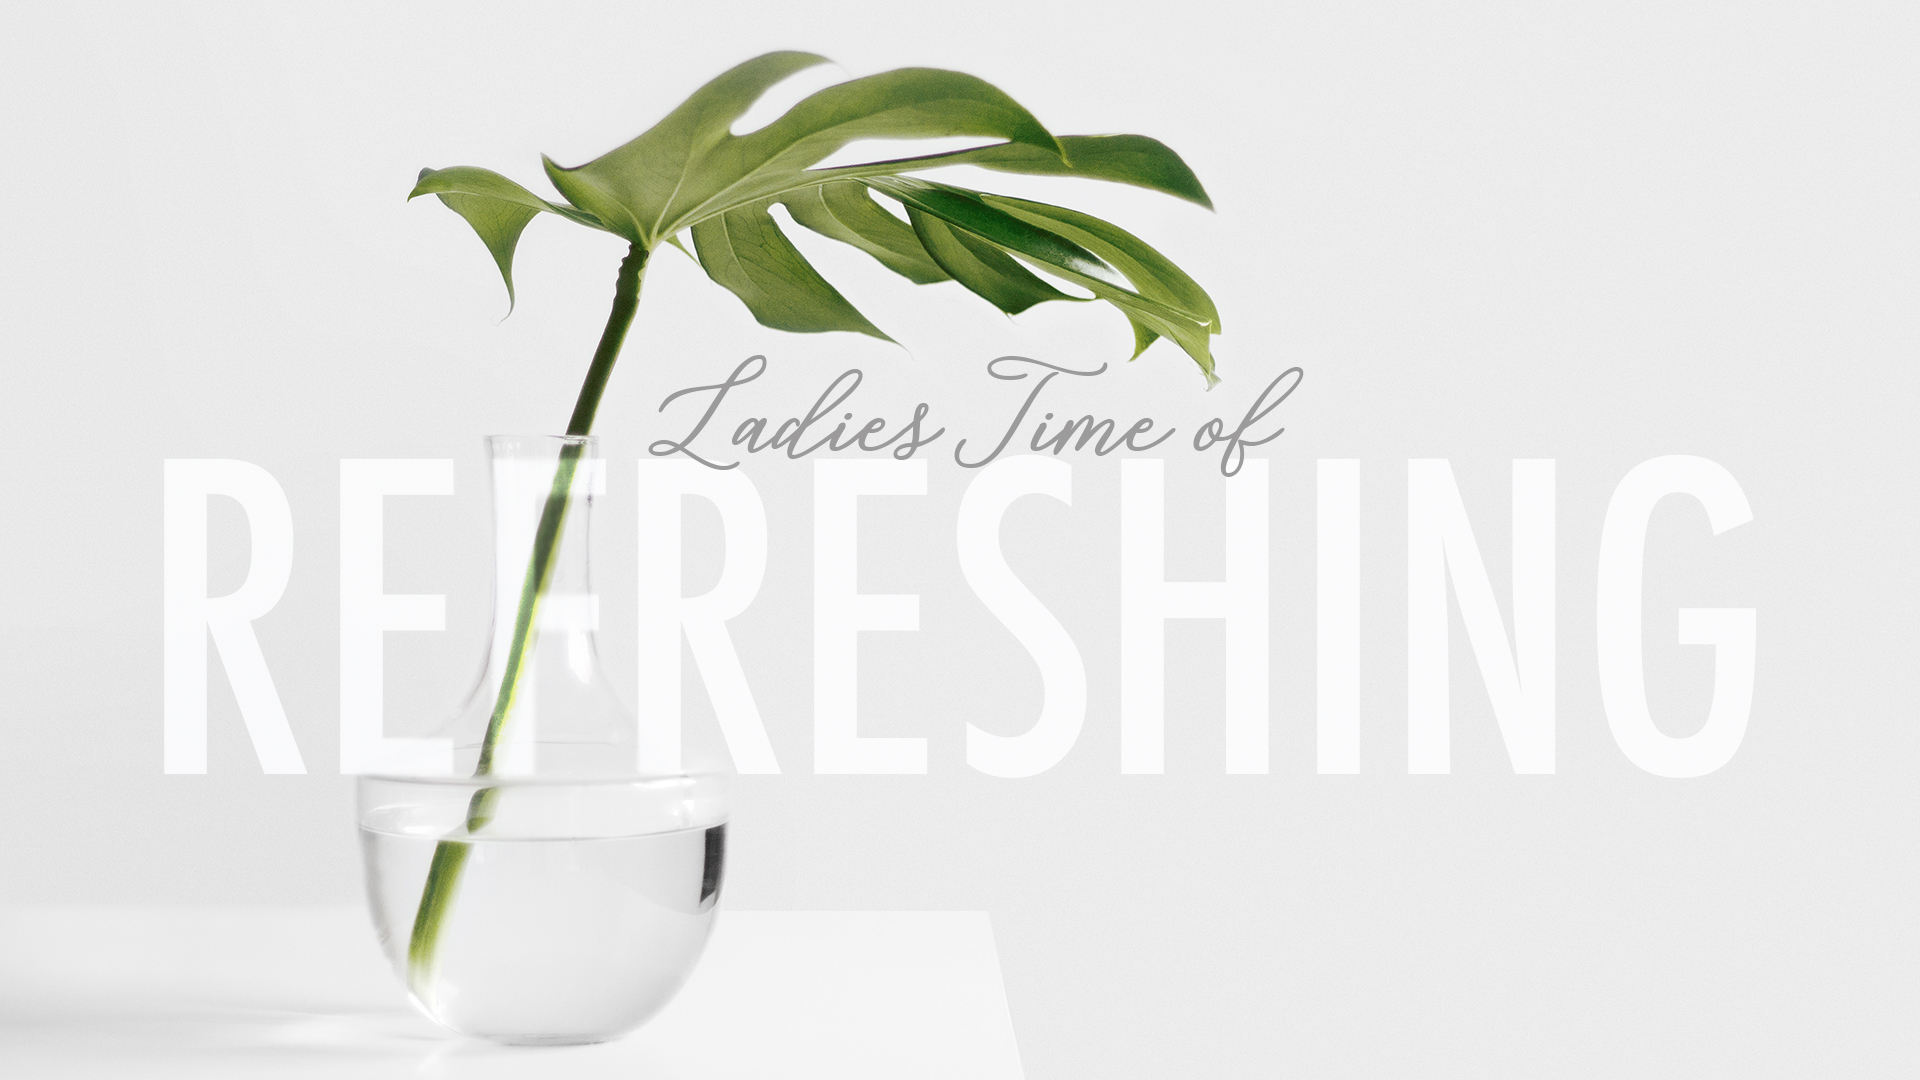 Ladies Time of Refreshing - Banner Photo of Plants